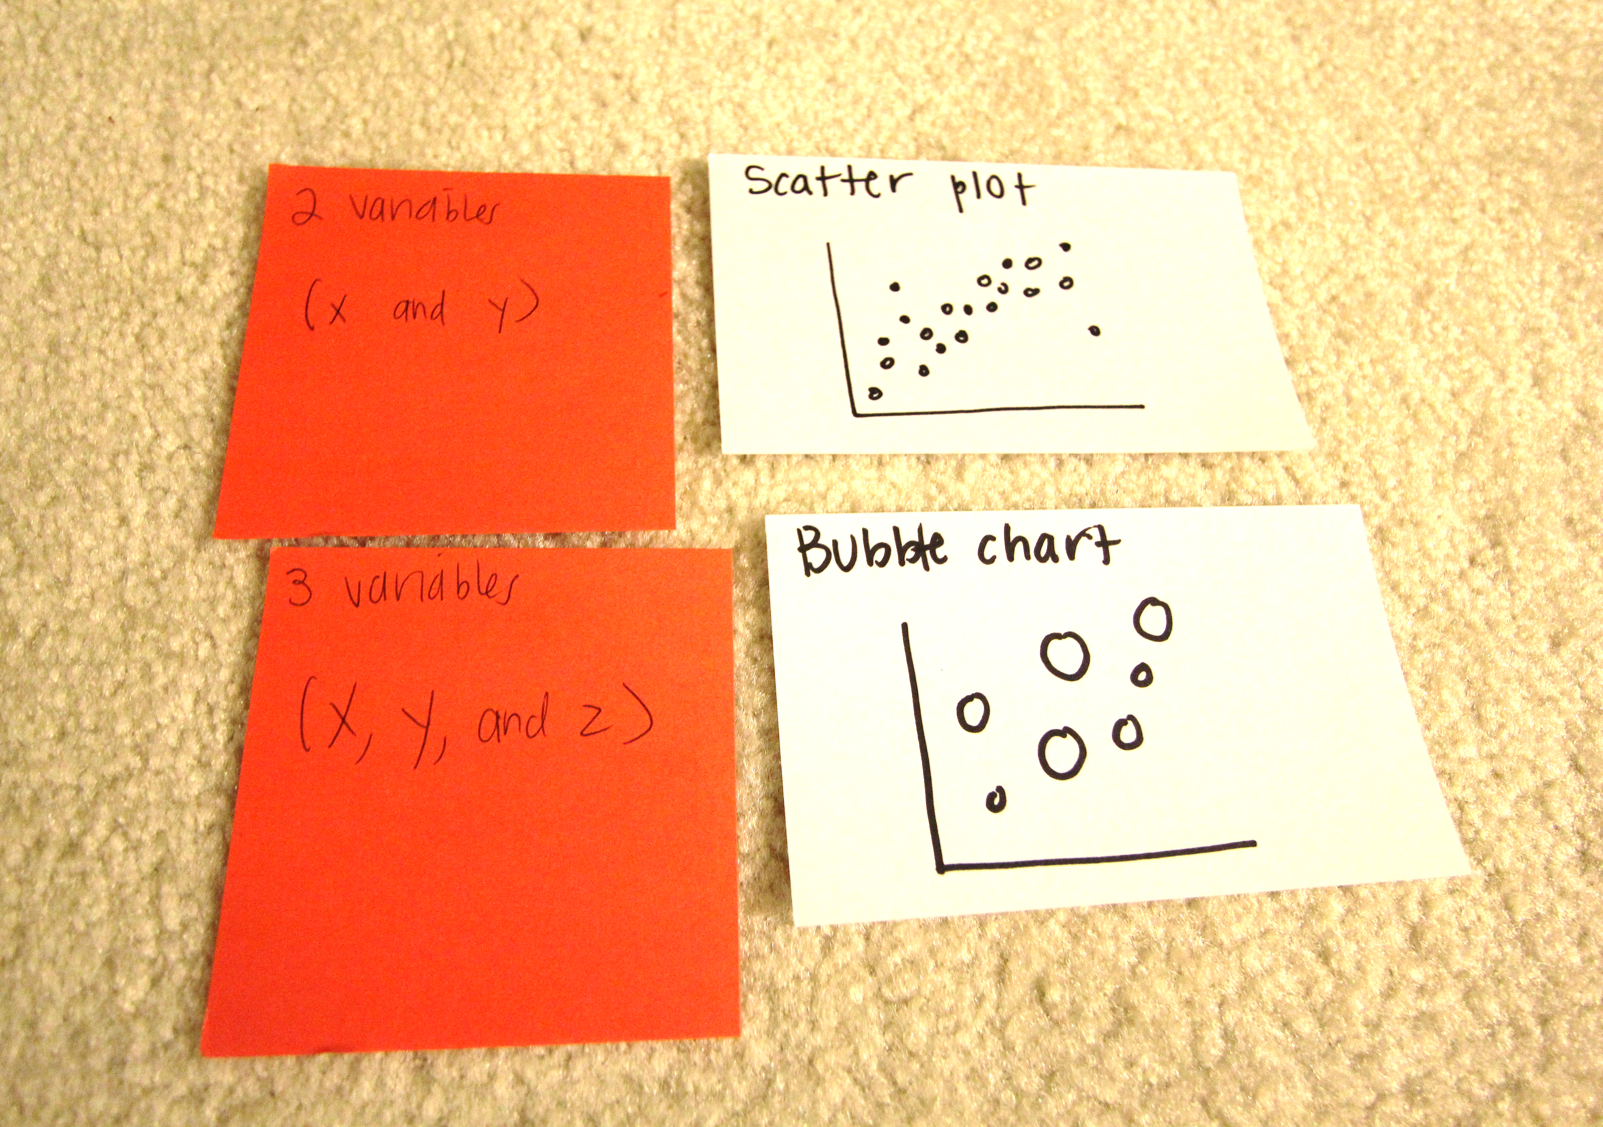 Sketches of charts I use on a regular basis on 3.5 x 5 inch index cards: